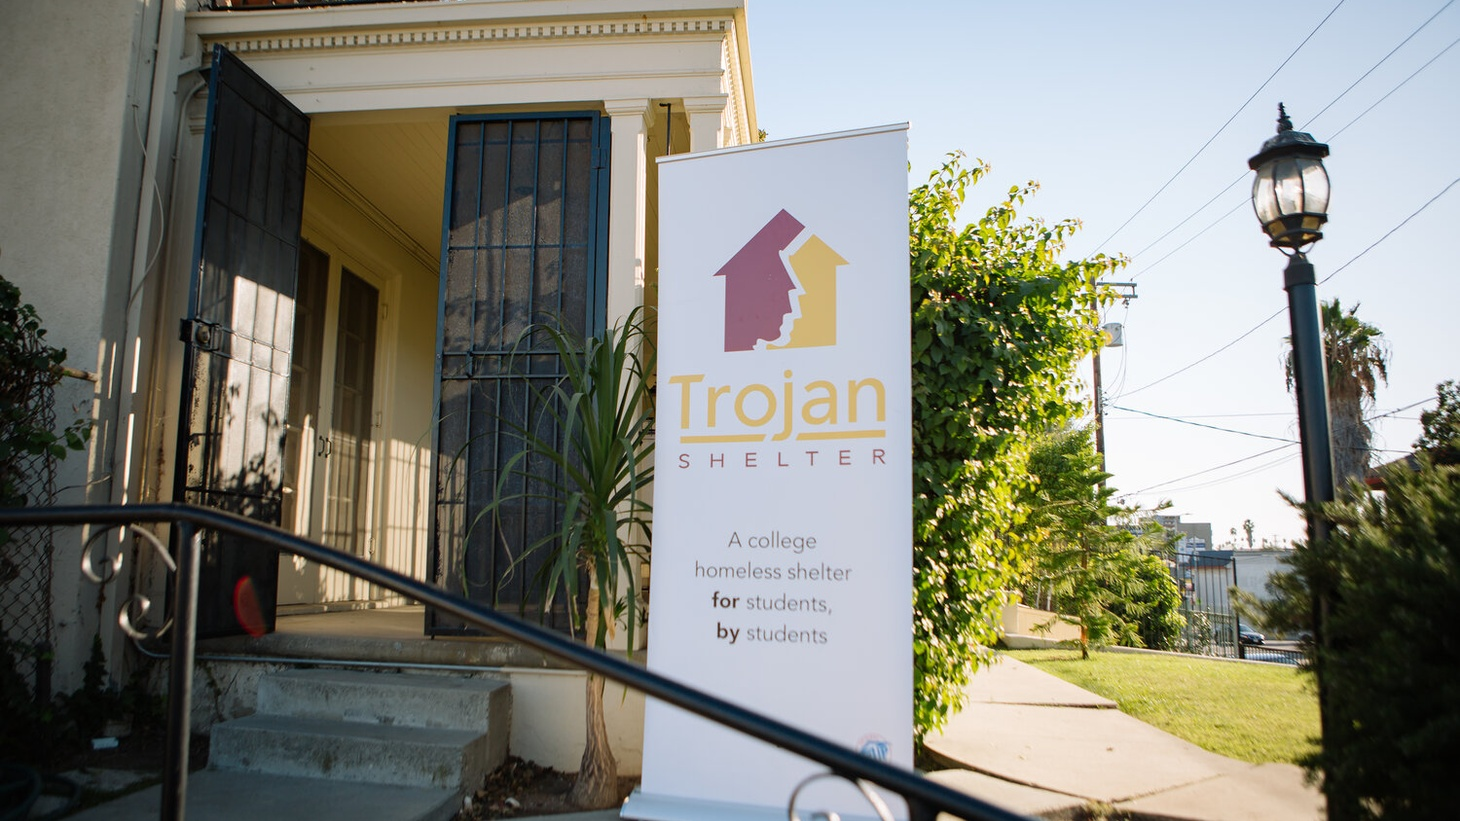 The entrance of Trojan Shelter.